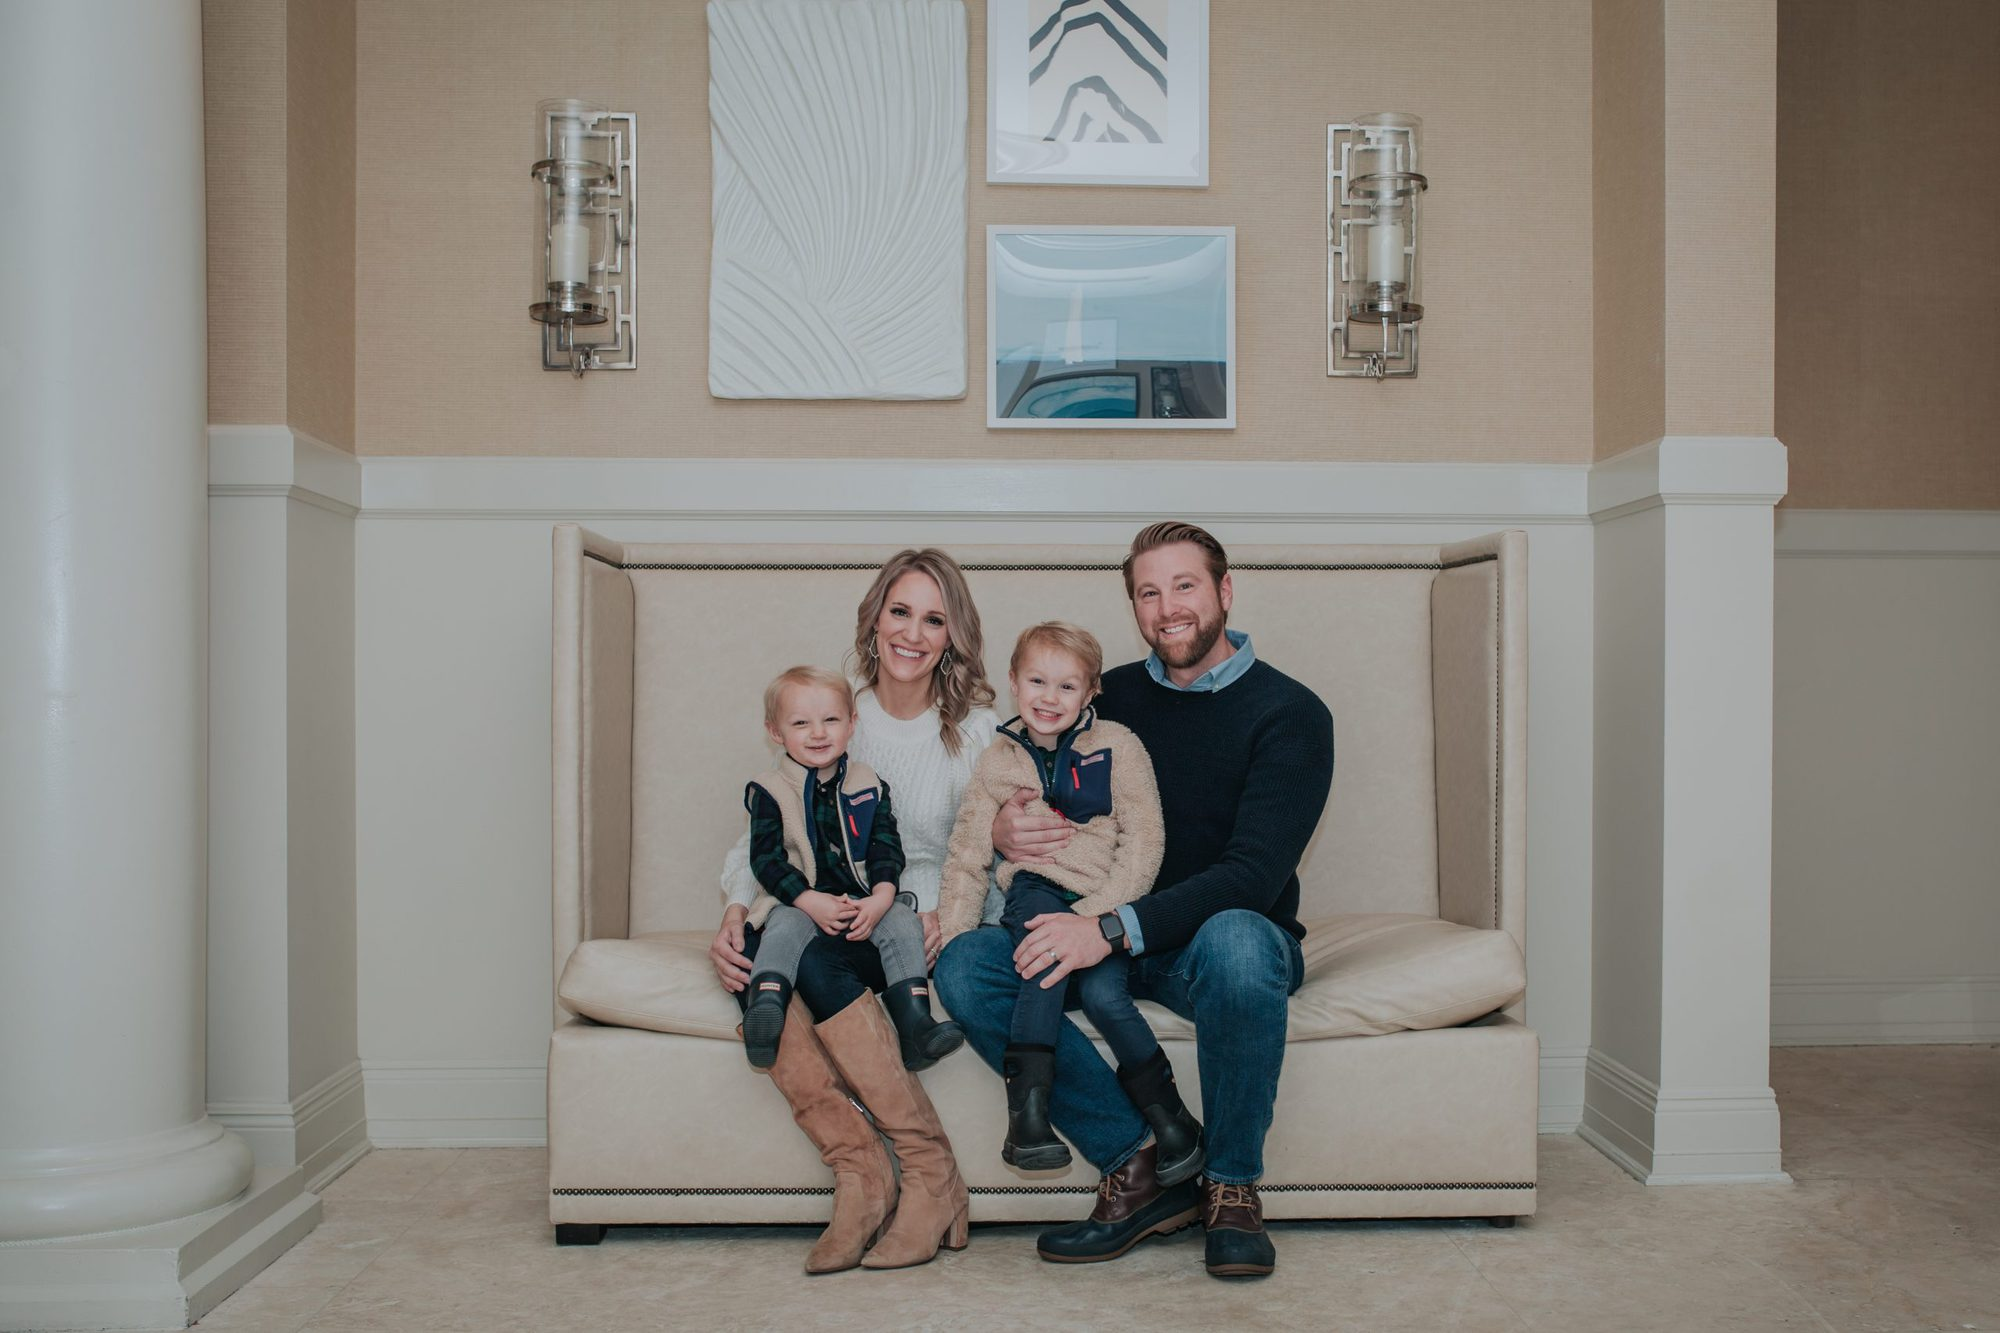 family photo at Inn at Bay Harbor |Inn at Bay Harbor by popular Michigan travel blog, The House of Navy: image of a family sitting together on a couch at the Inn at Bay Harbor.